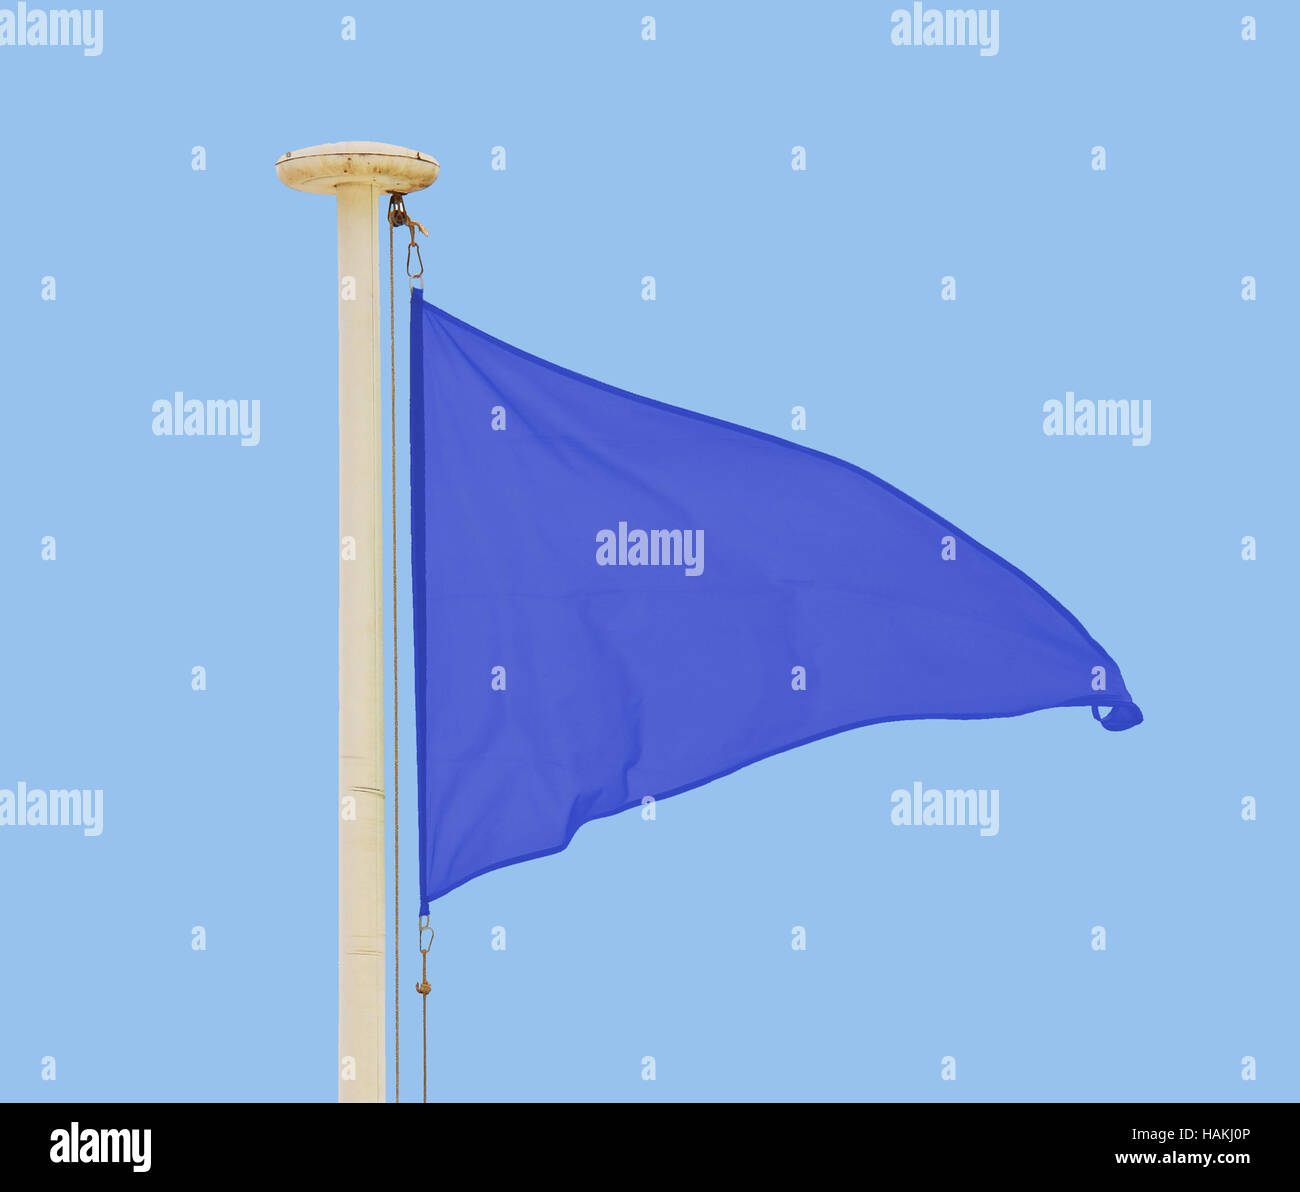 Blue pennant flying in a brisk breeze against a pale blue sky - Stock Image